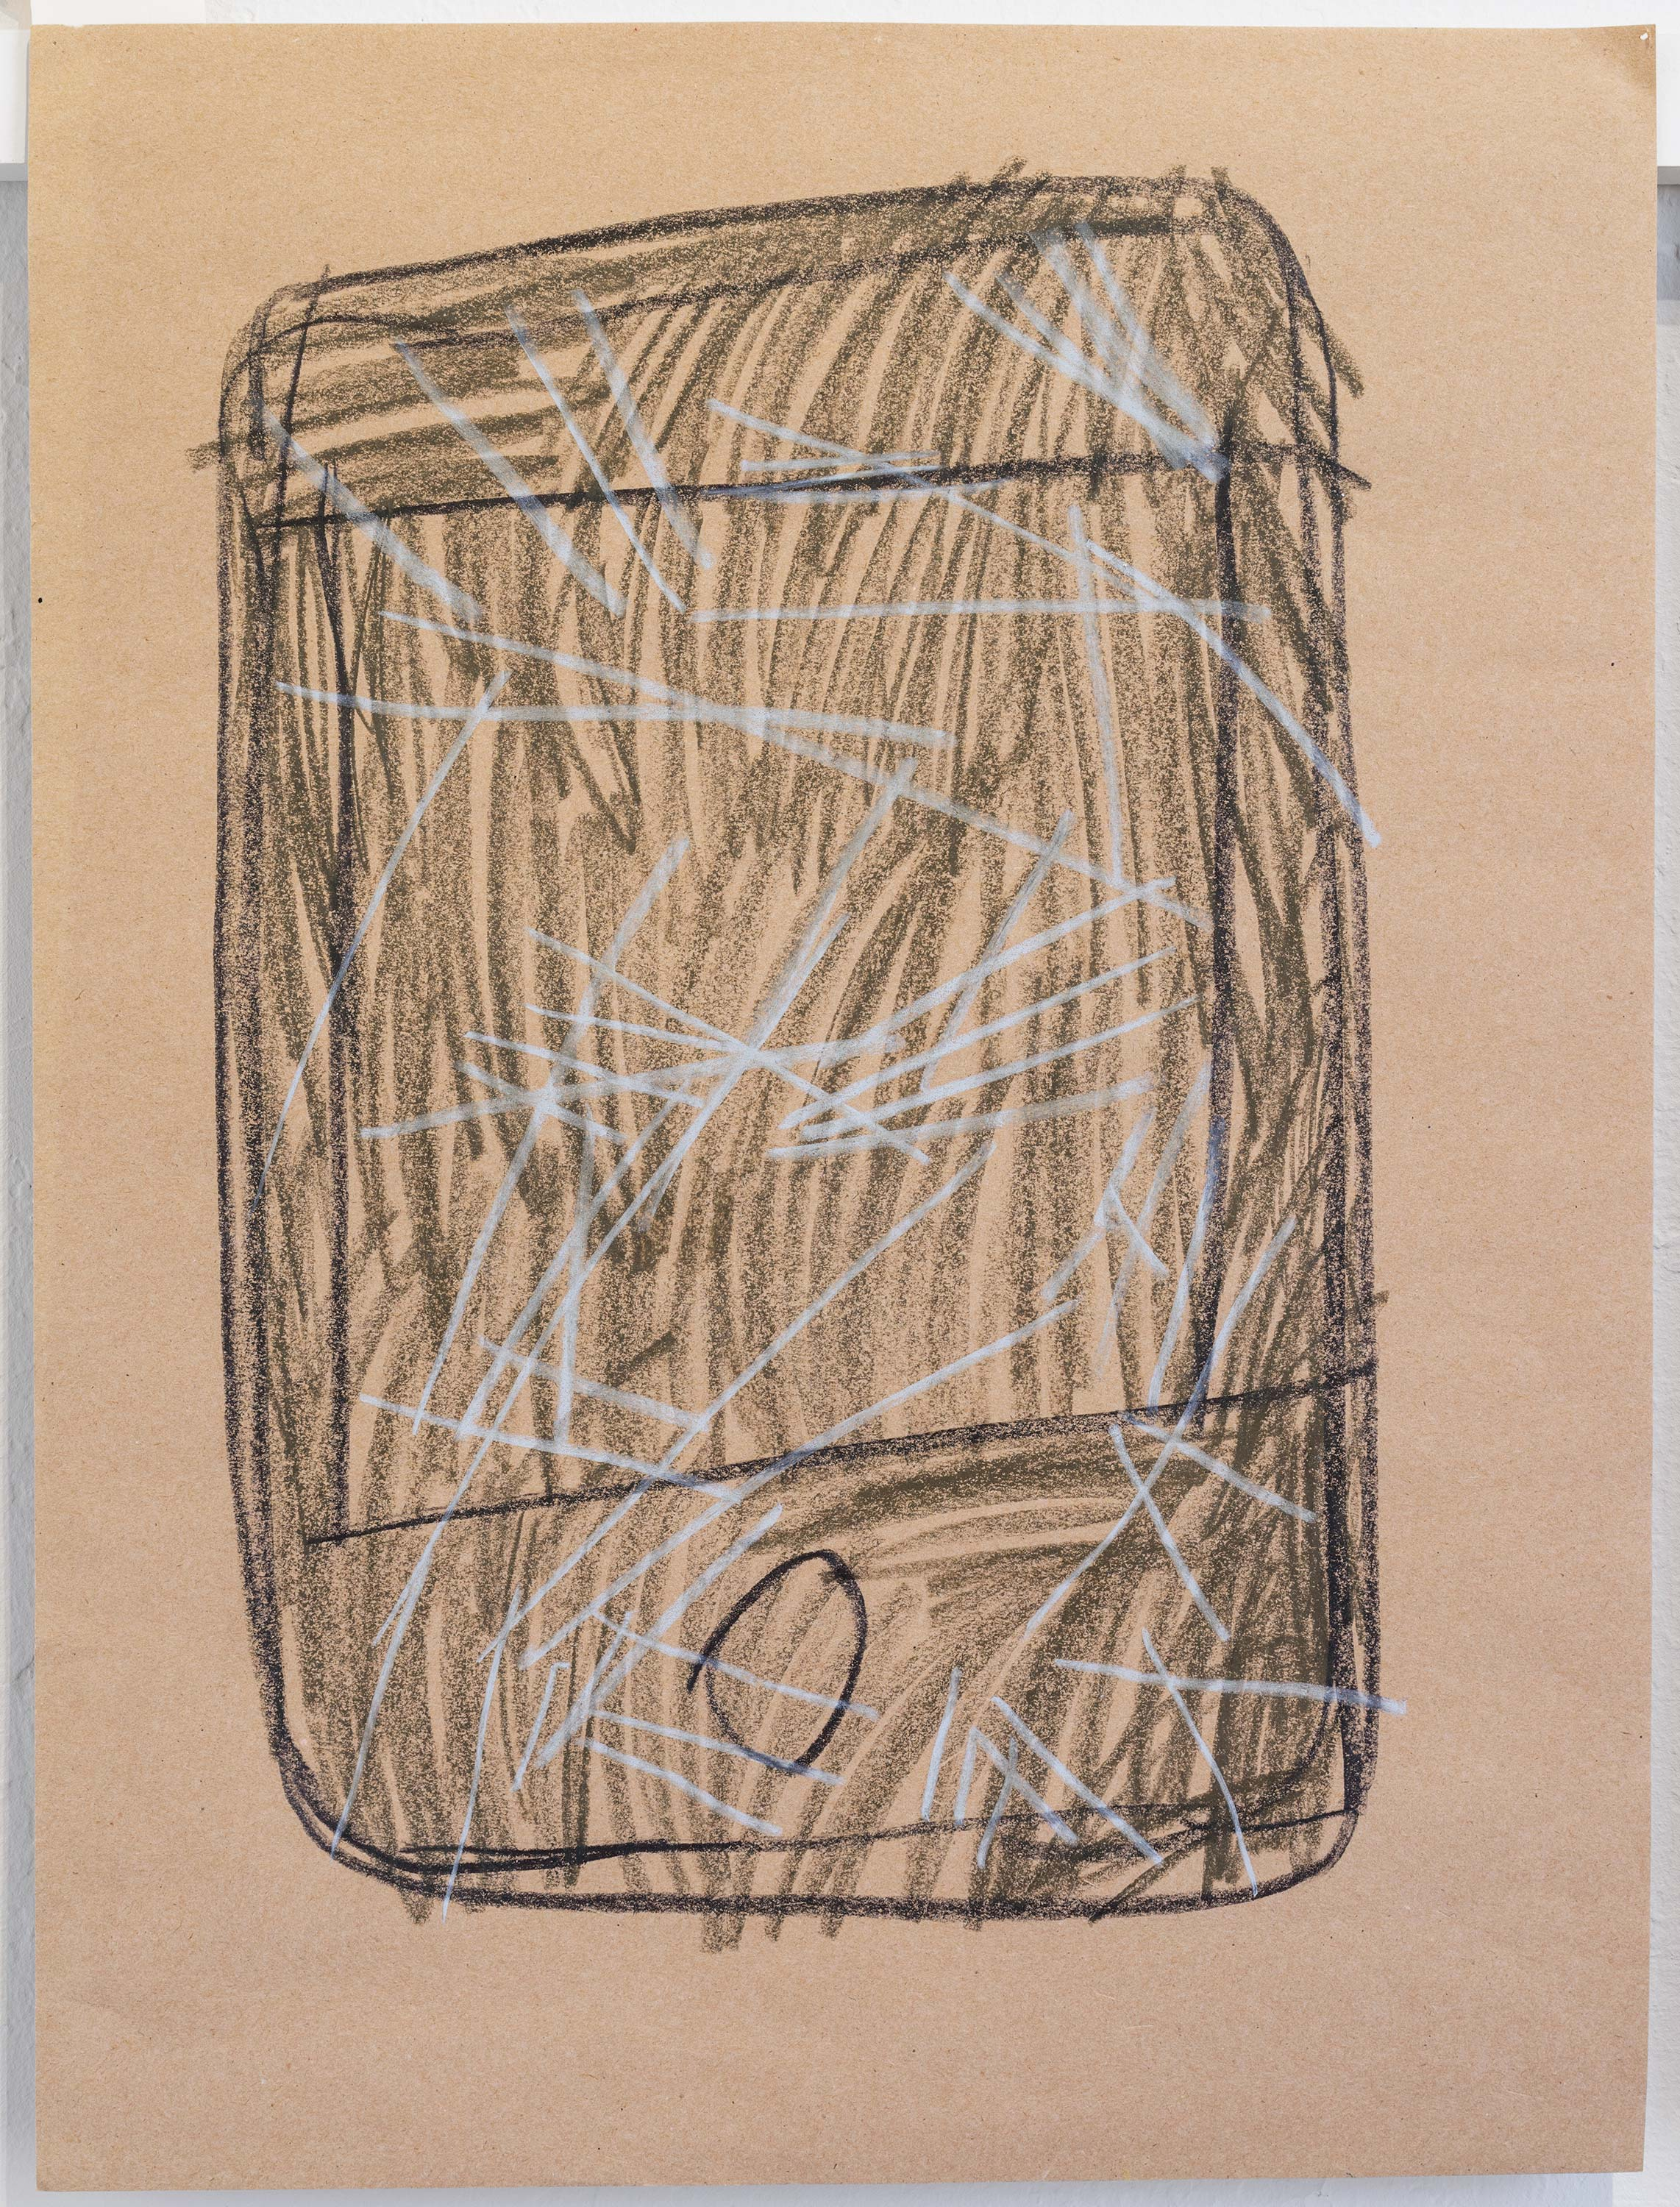 Al Freeman<br>Broken phone 1<br>2015<br>Graphite and oil pastel on paper<br>18 x 24 inches (46 x 61 cm)